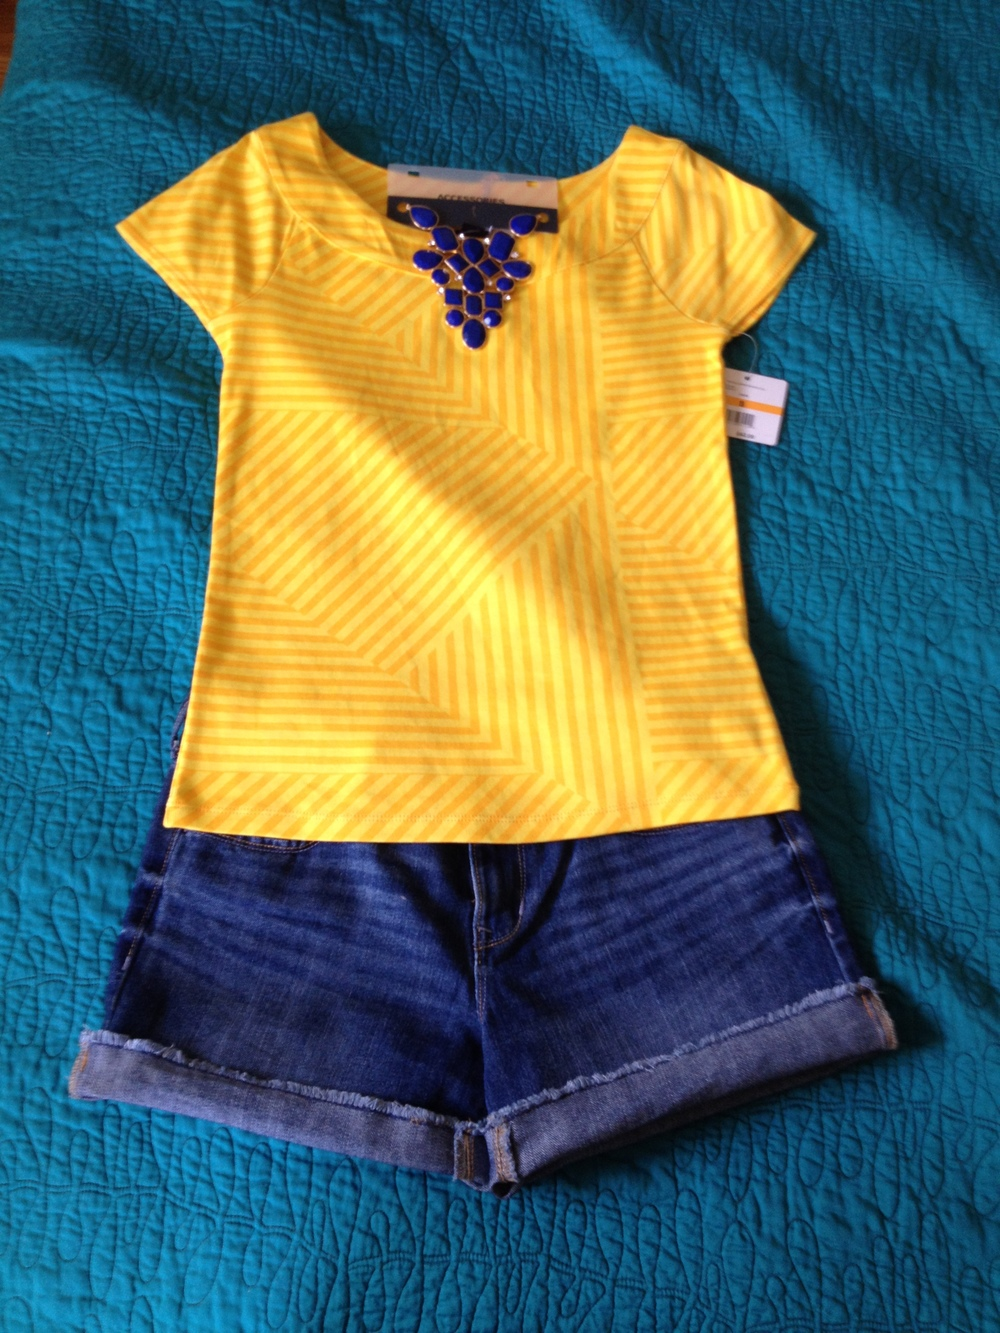 This is a fun top I picked up at Ross for $14. We ended up not using it but I liked it because of the bright color and subtle print. My plan was to fold the bottom under to make a crop top for the model to wear with jean shorts and a bright and fun statement necklace! The necklace is from OldNavy and was $20. Jean shorts are mine and are also OldNavy.